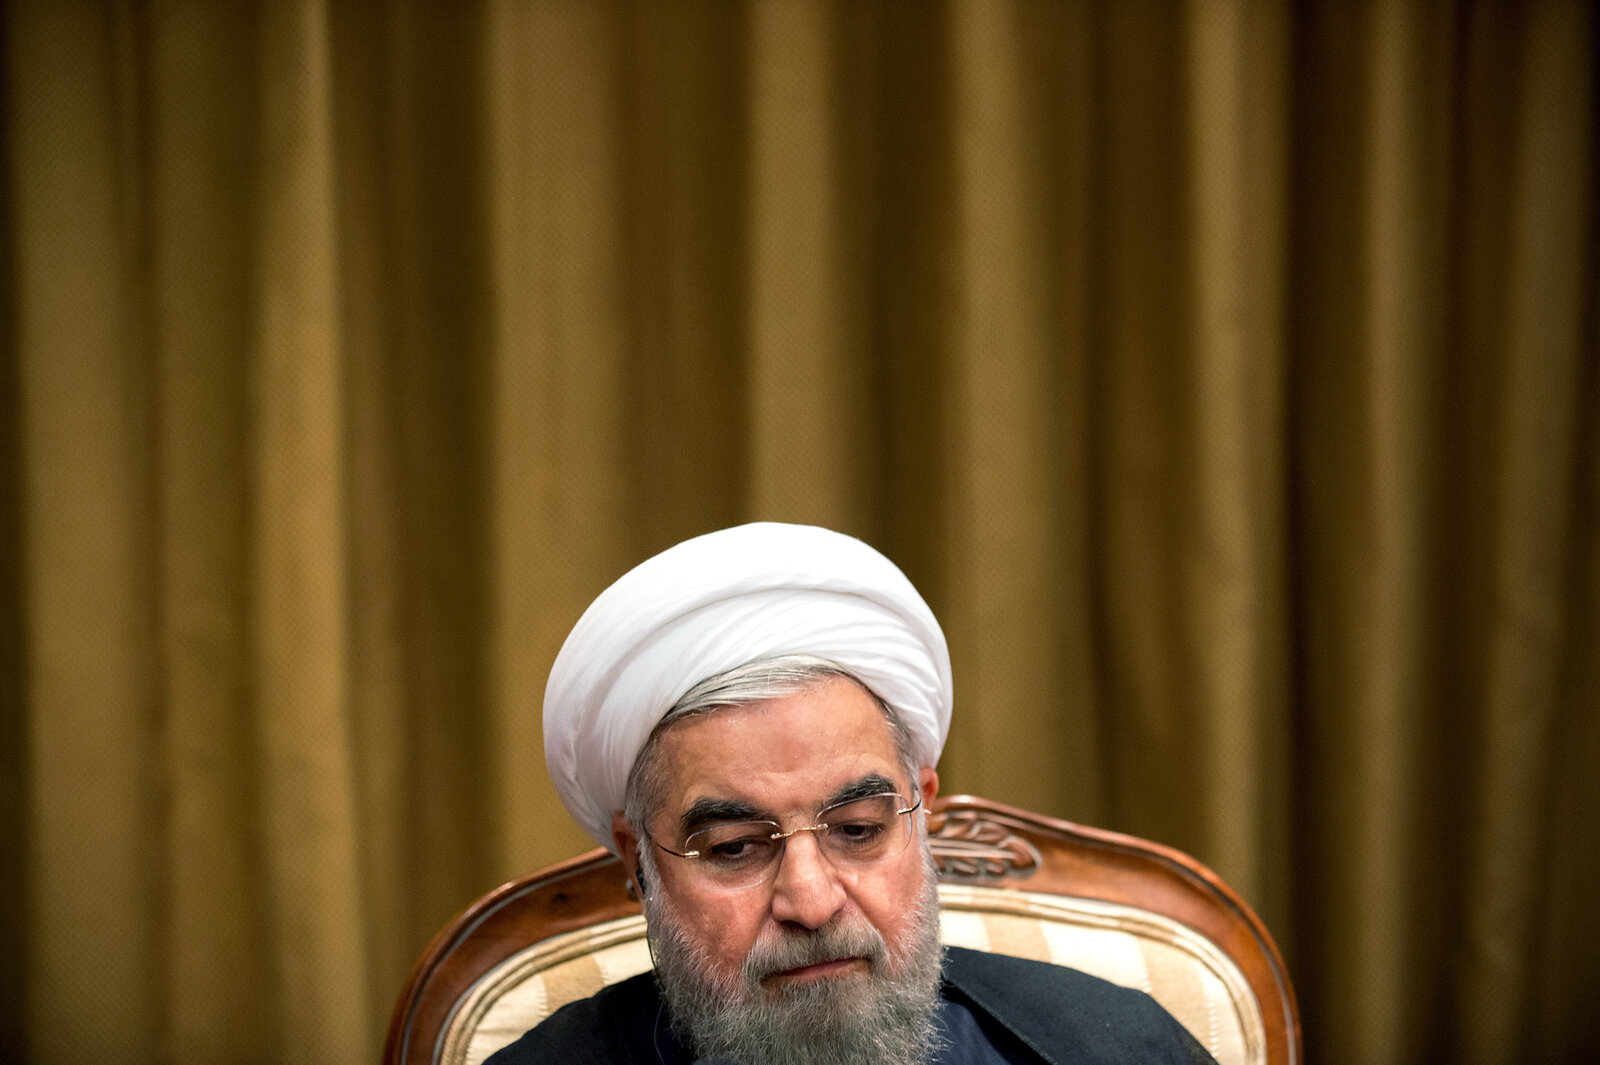 Iranian President Hassan Rouhani prepares to speak with NPR's Steve Inskeep on Saturday in New York. Rouhani reaffirmed Iran's commitment to the nuclear deal and said his country would be willing to discuss Syria's future with the United States — after ISIS is defeated.